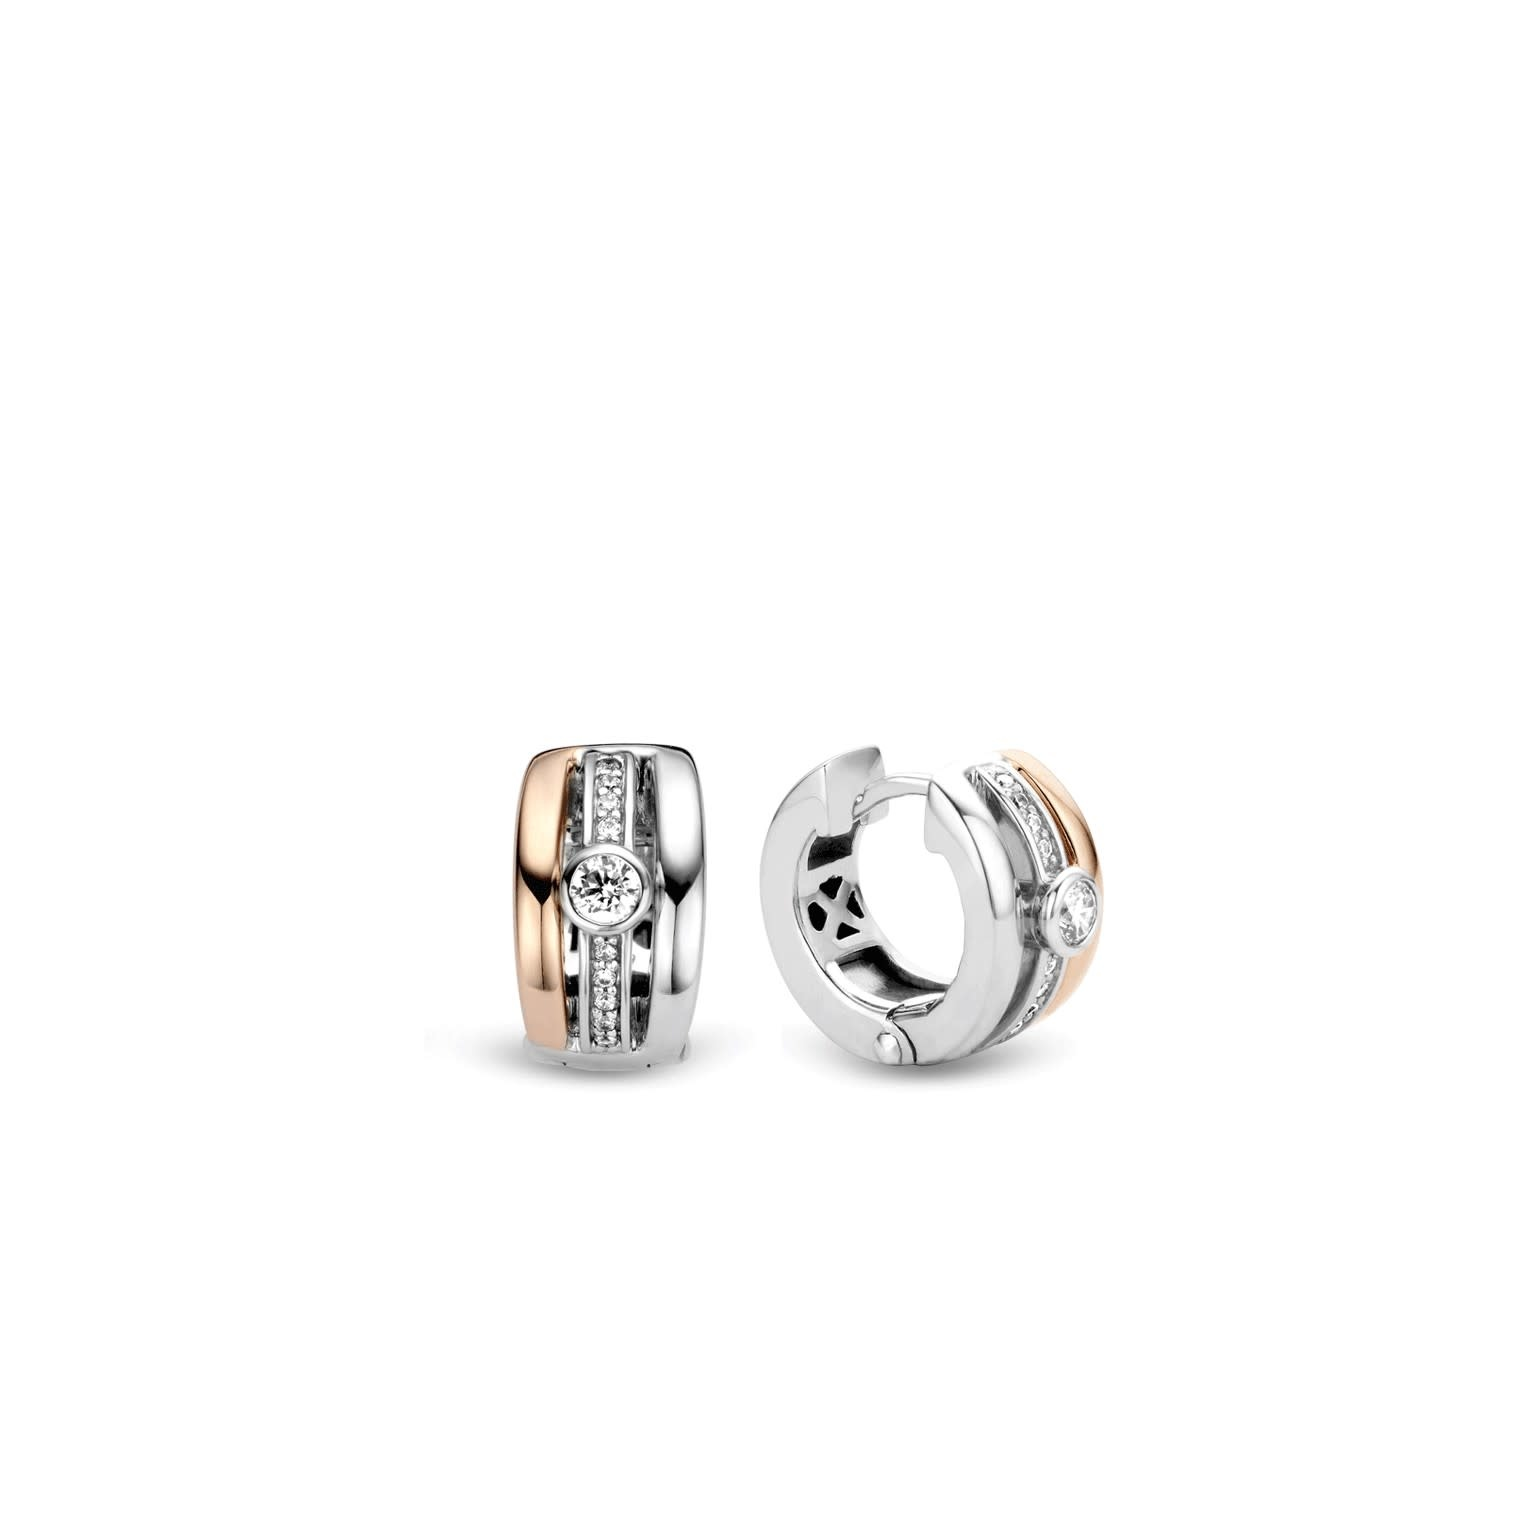 TI SENTO - Milano Earrings 7754ZR-1